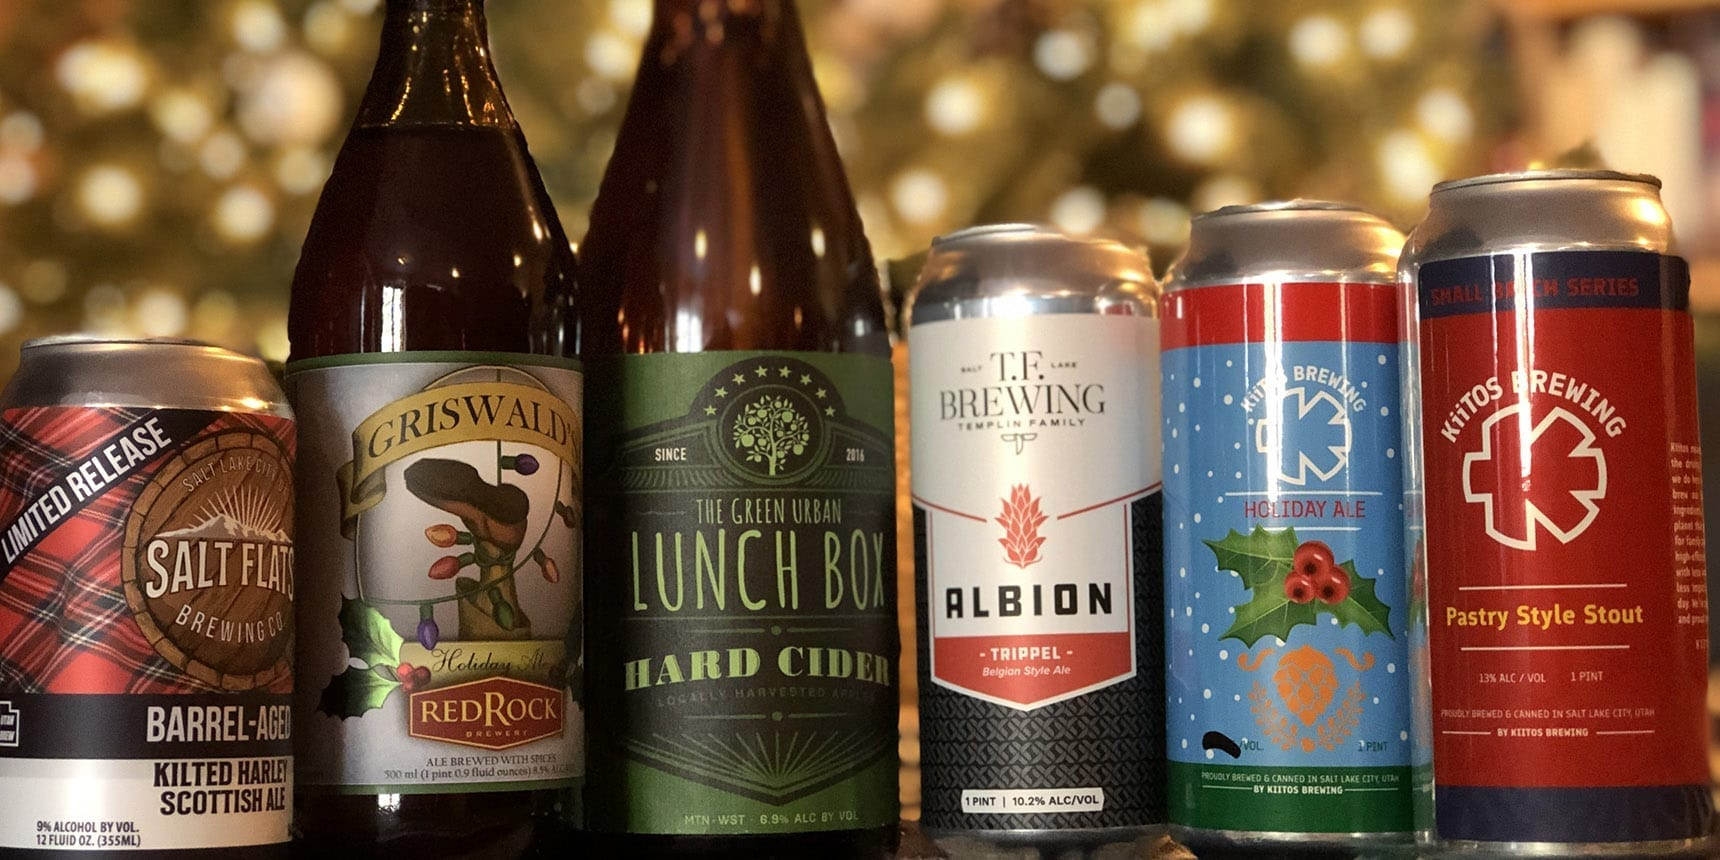 Utah Holiday Beers 2019 - Featured